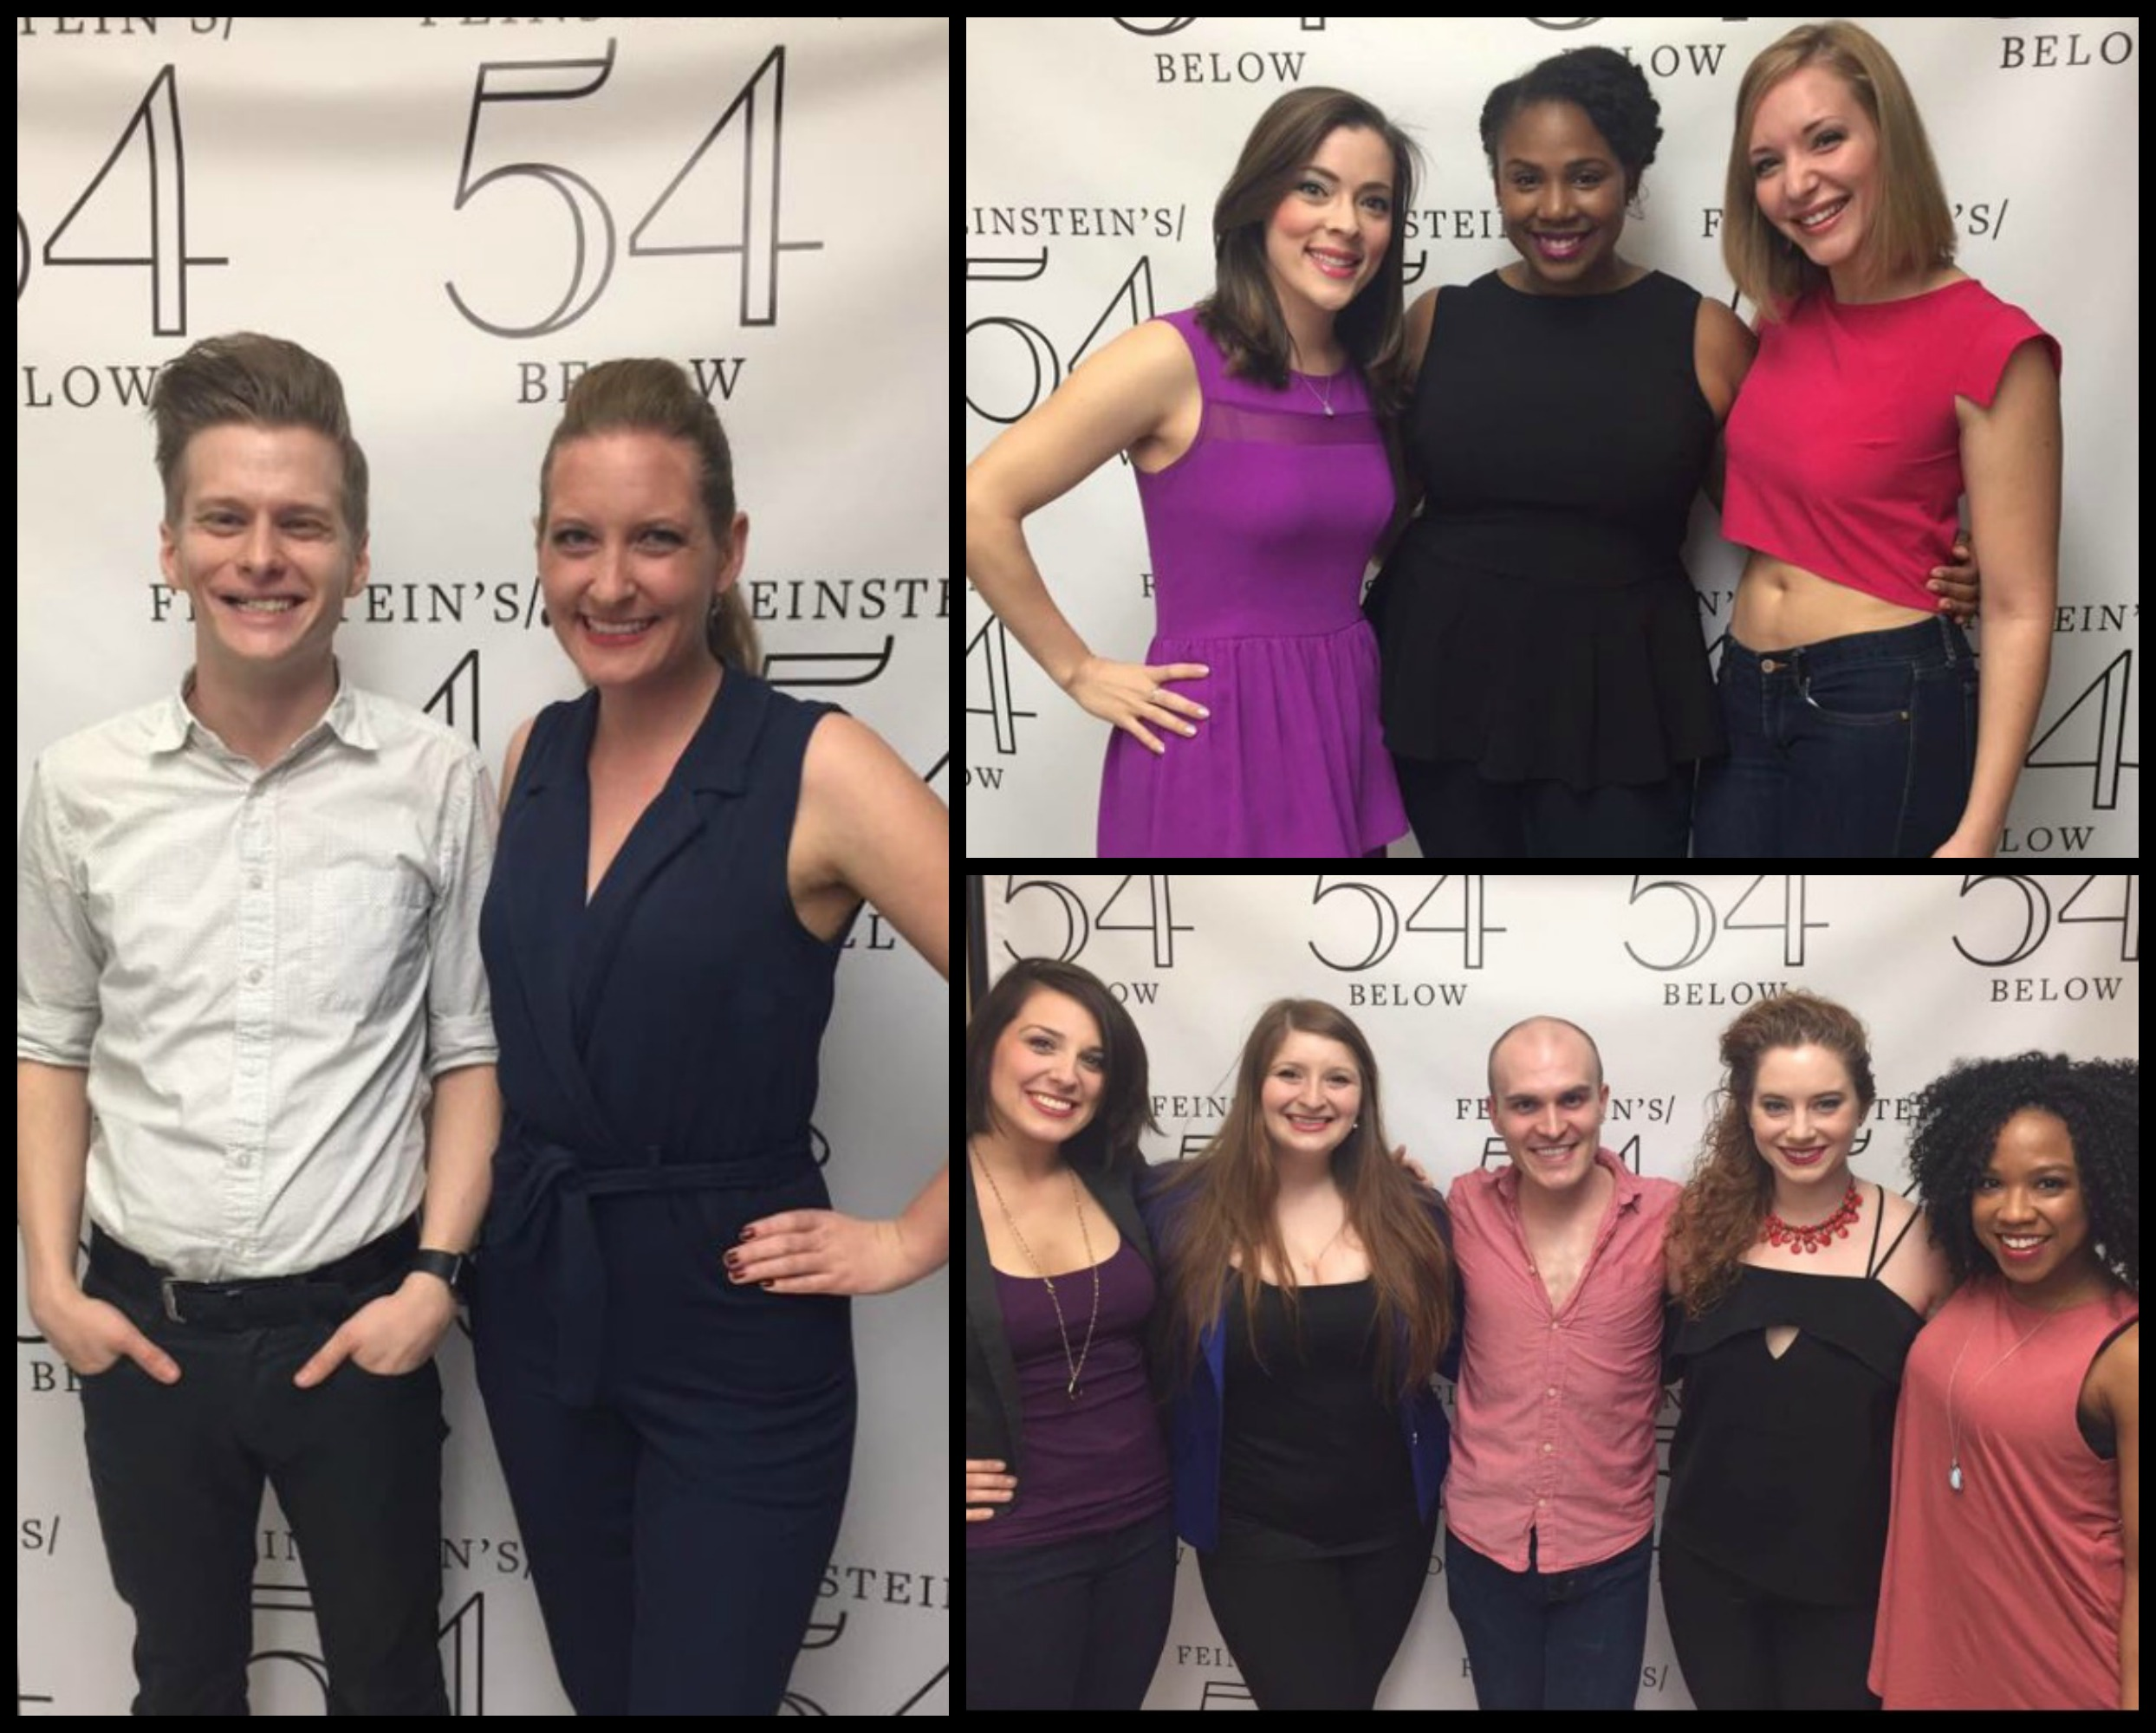 Alumni from the classes of 2011, 2010 and 2009 performed at 54 Below